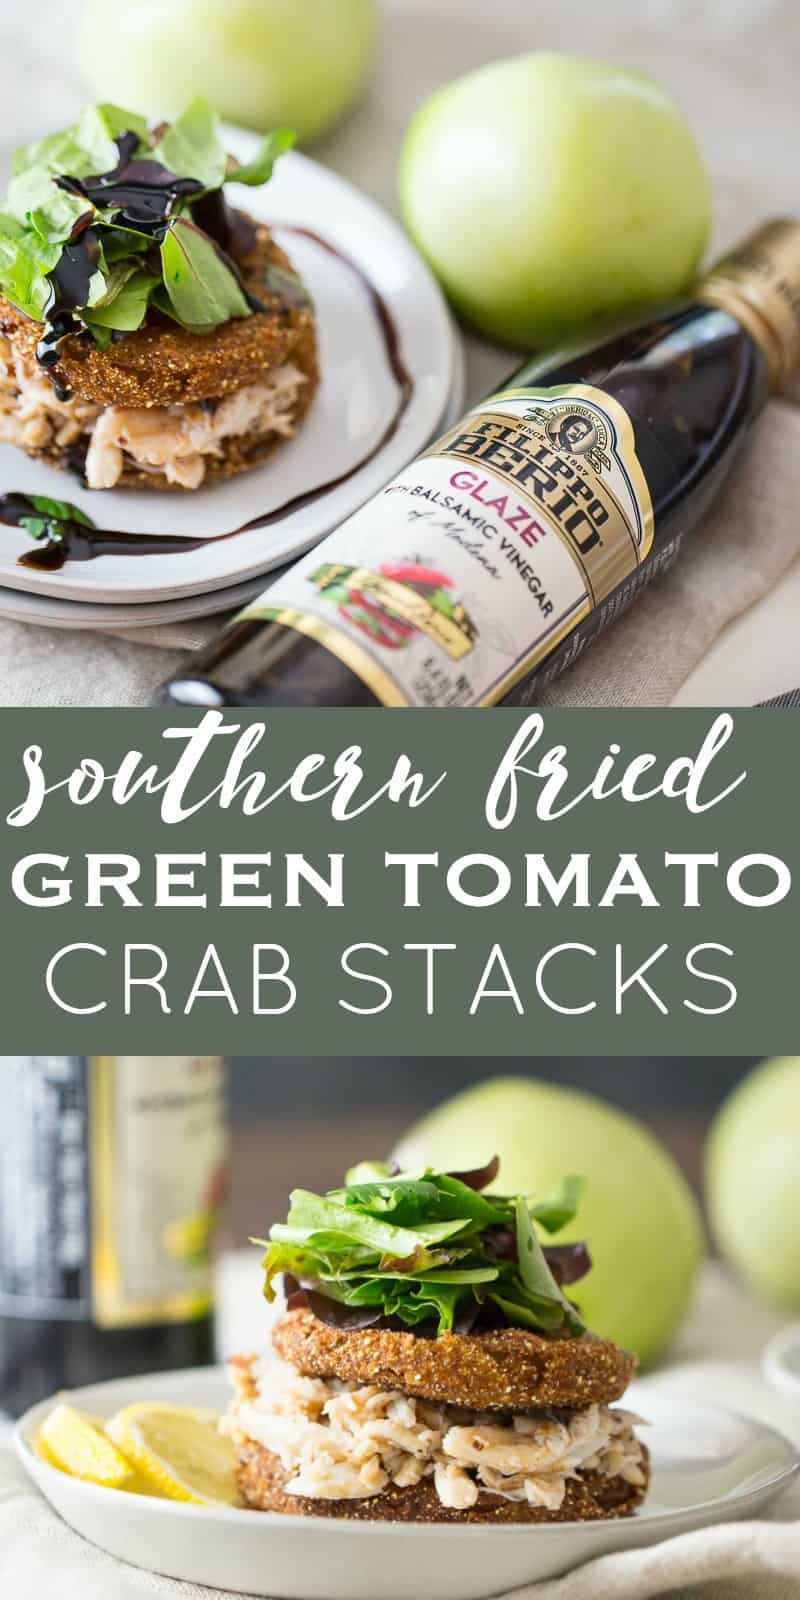 Southern Fried Green Tomato Recipe with Crab and a balsamic reduction, my favorite sauce!